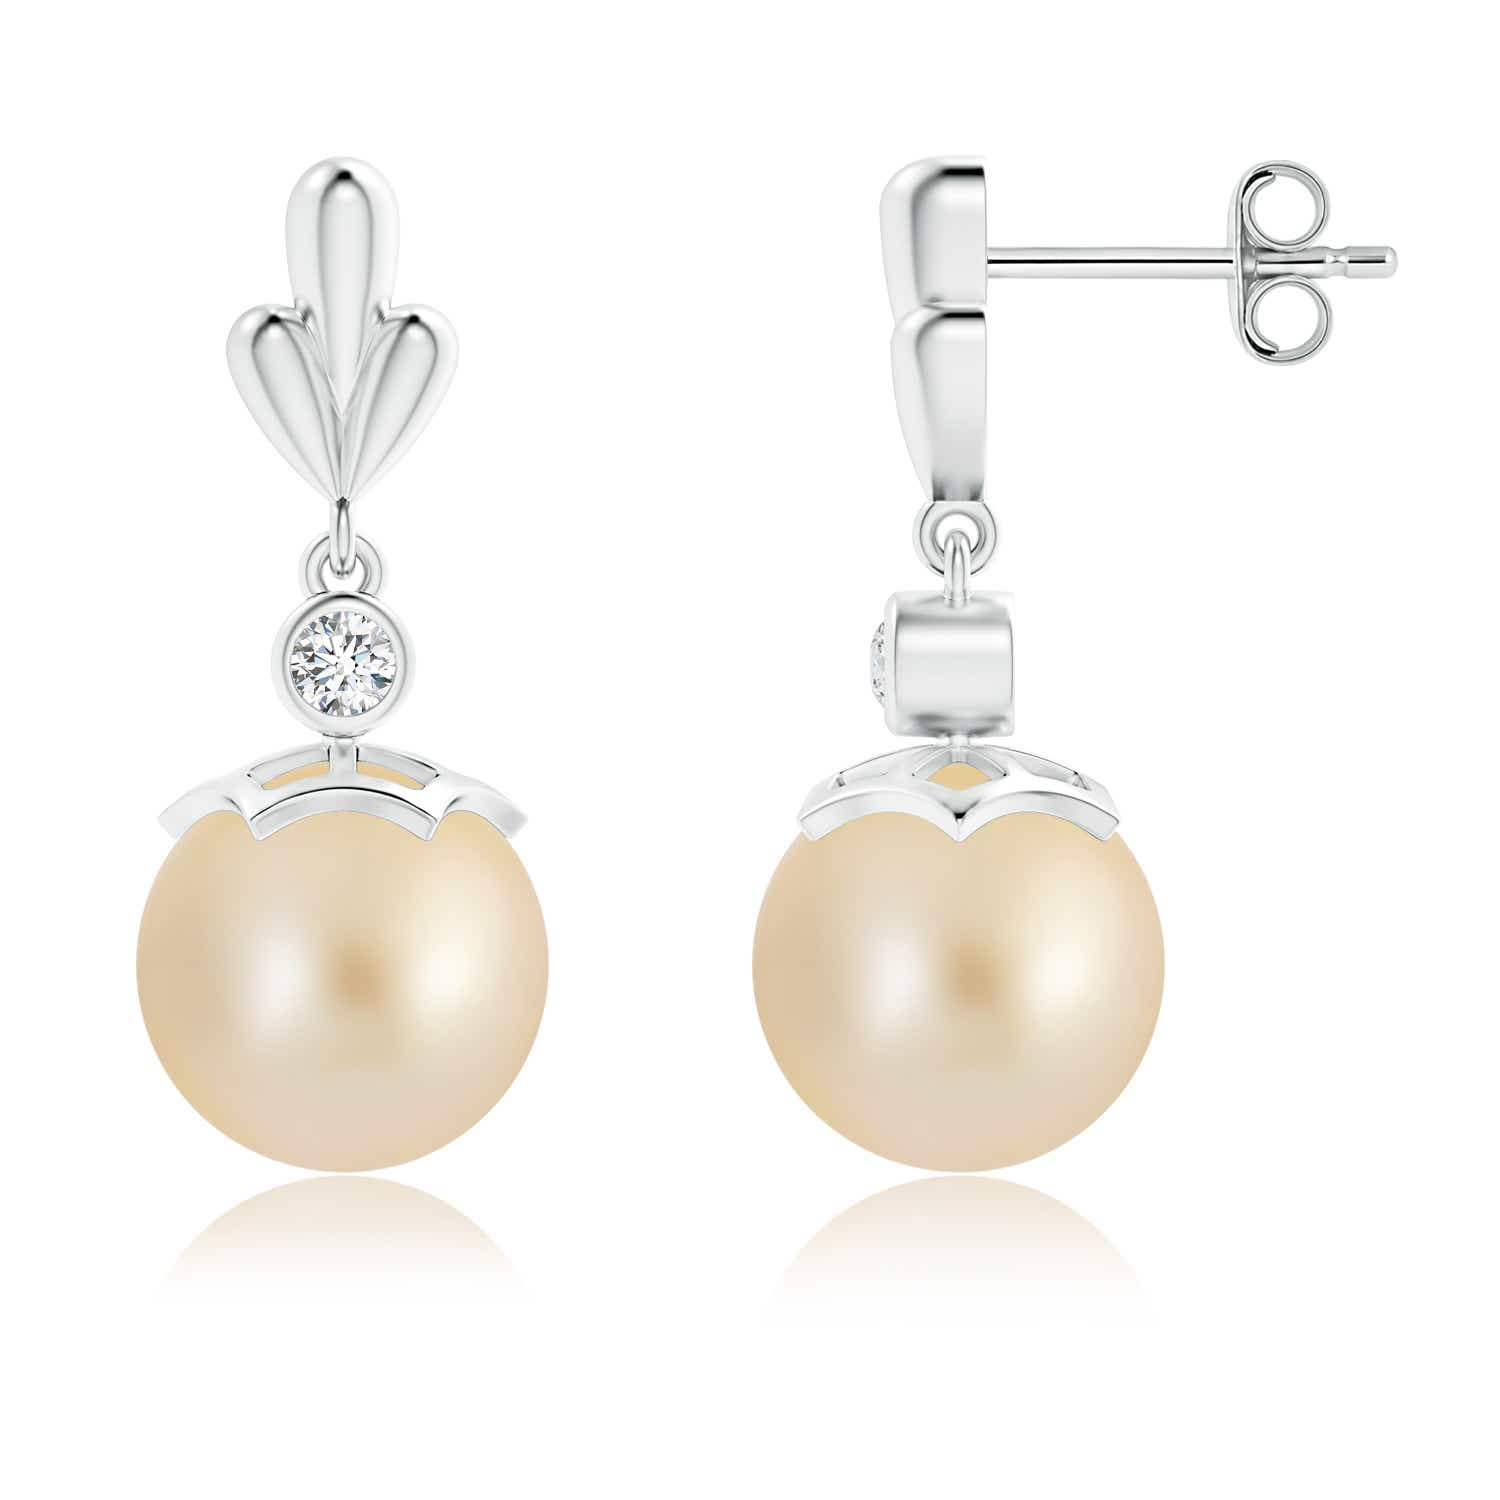 Angara Golden South Sea Cultured Pearl Earrings with Pear Motifs FZZF8